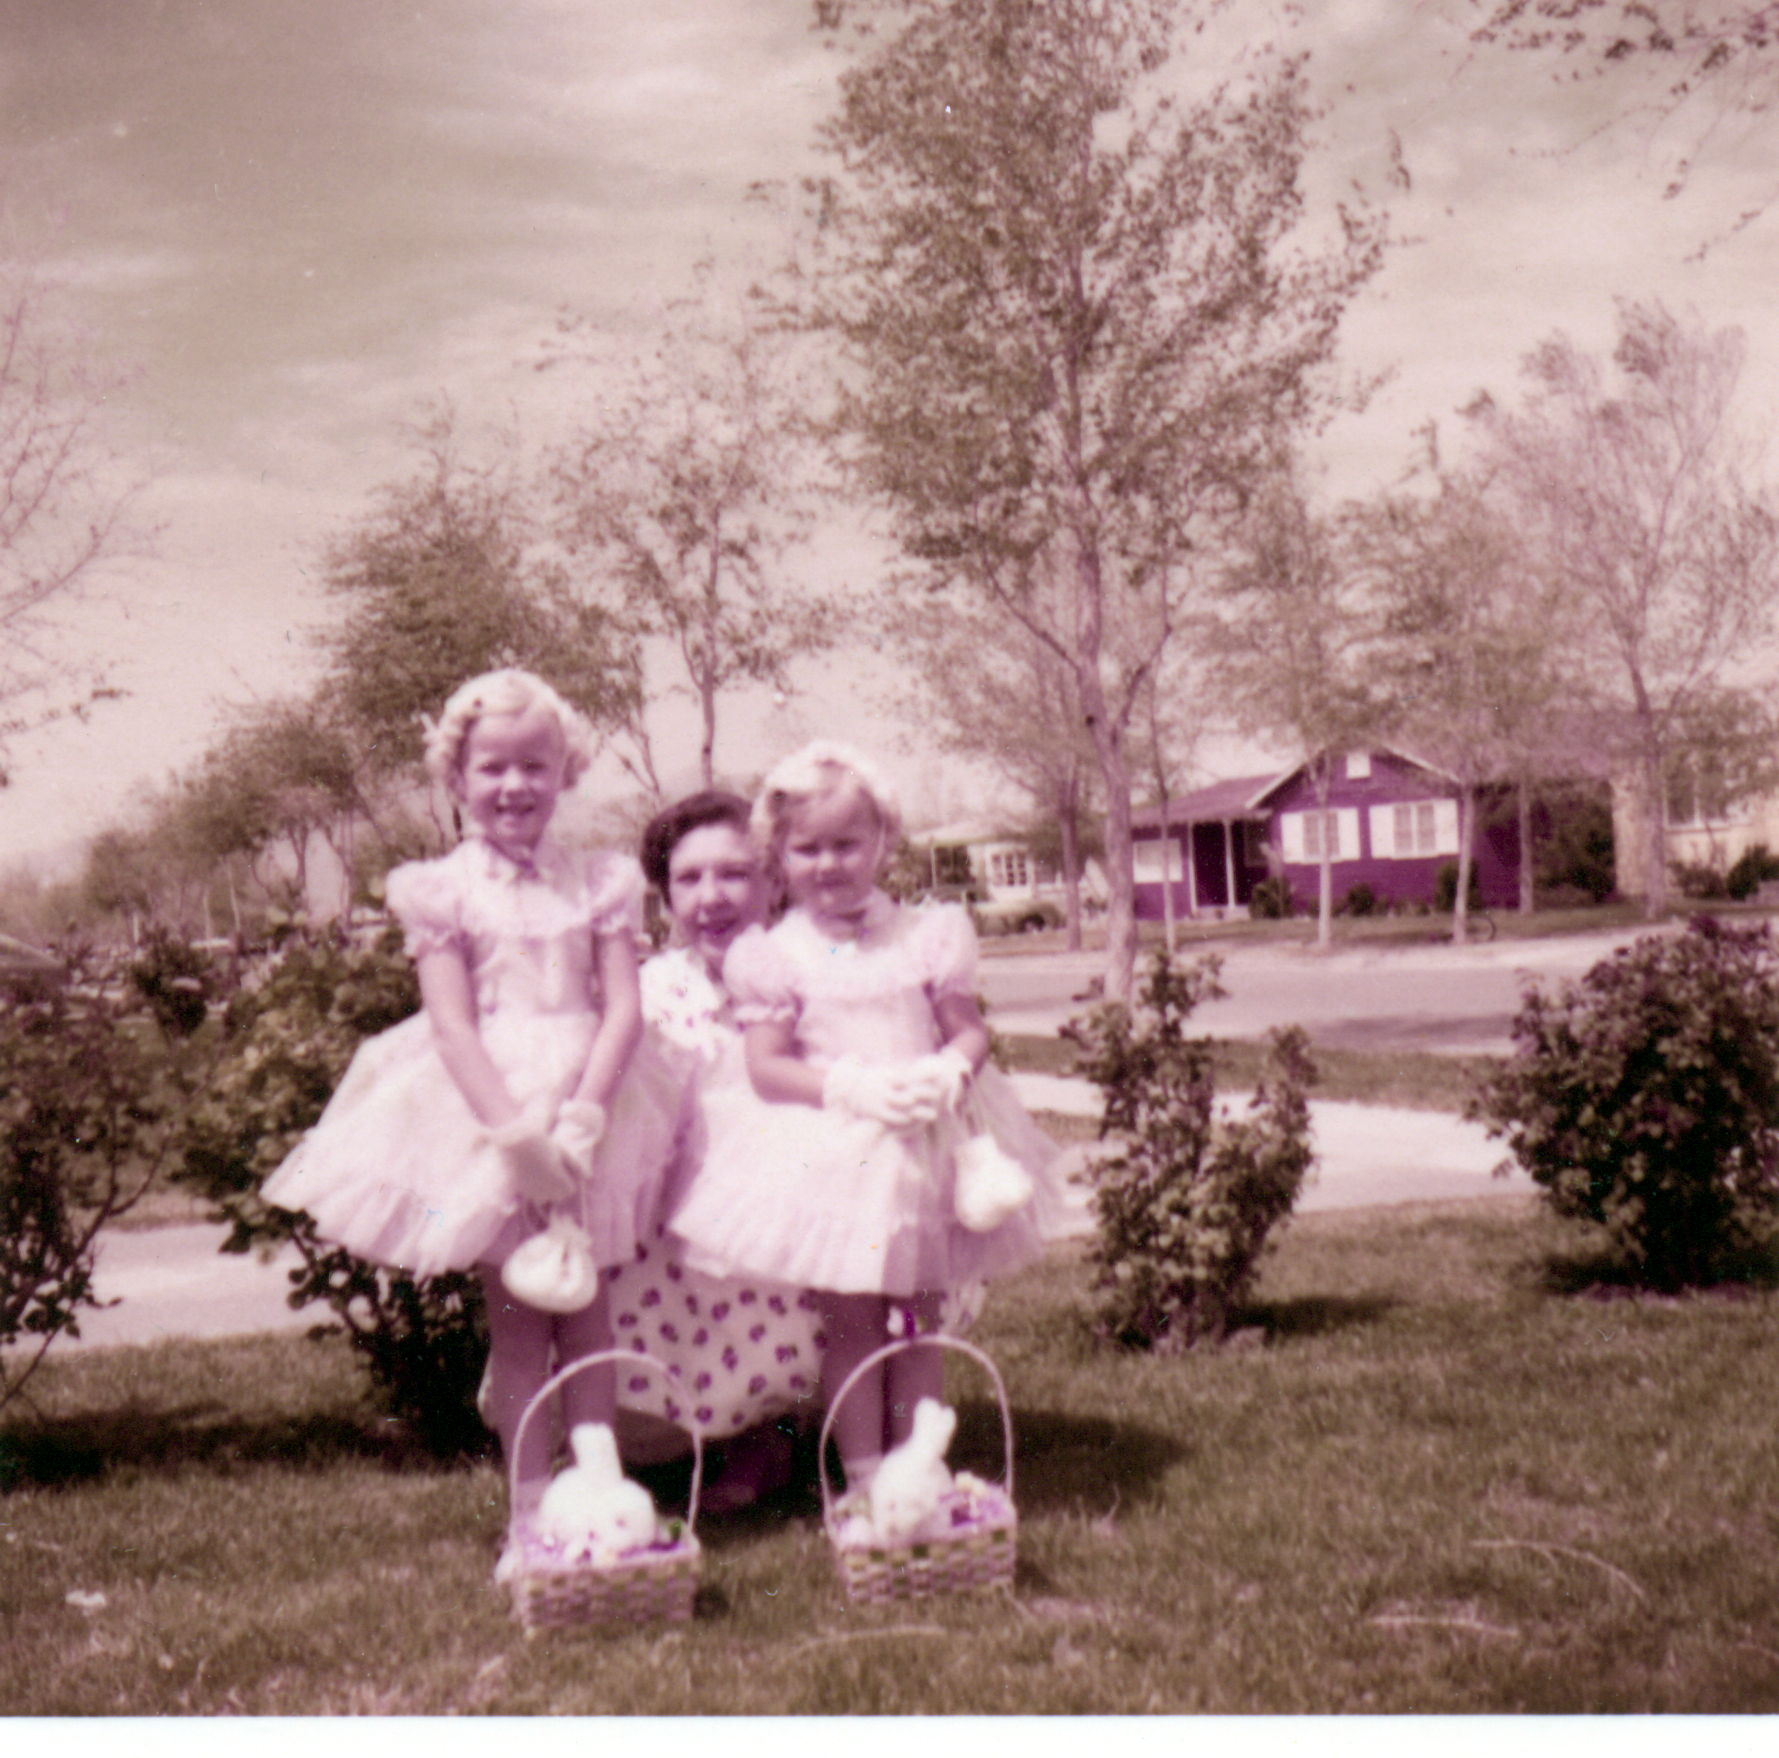 The Kingham sisters and mom